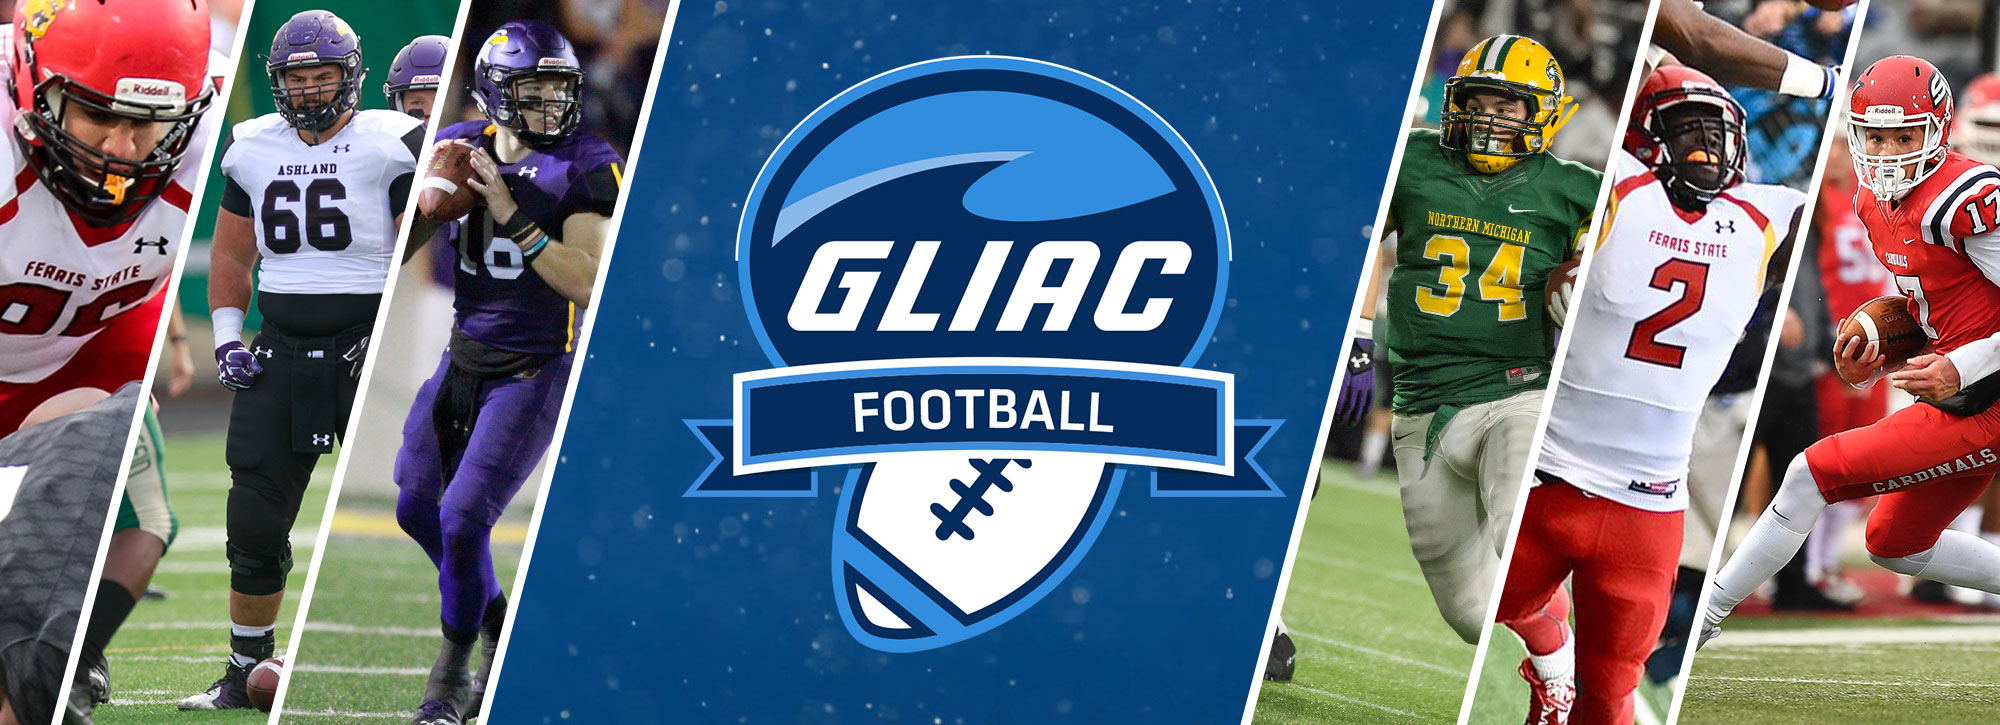 2017 All-GLIAC Football Teams, Player of the Year Awards Announced